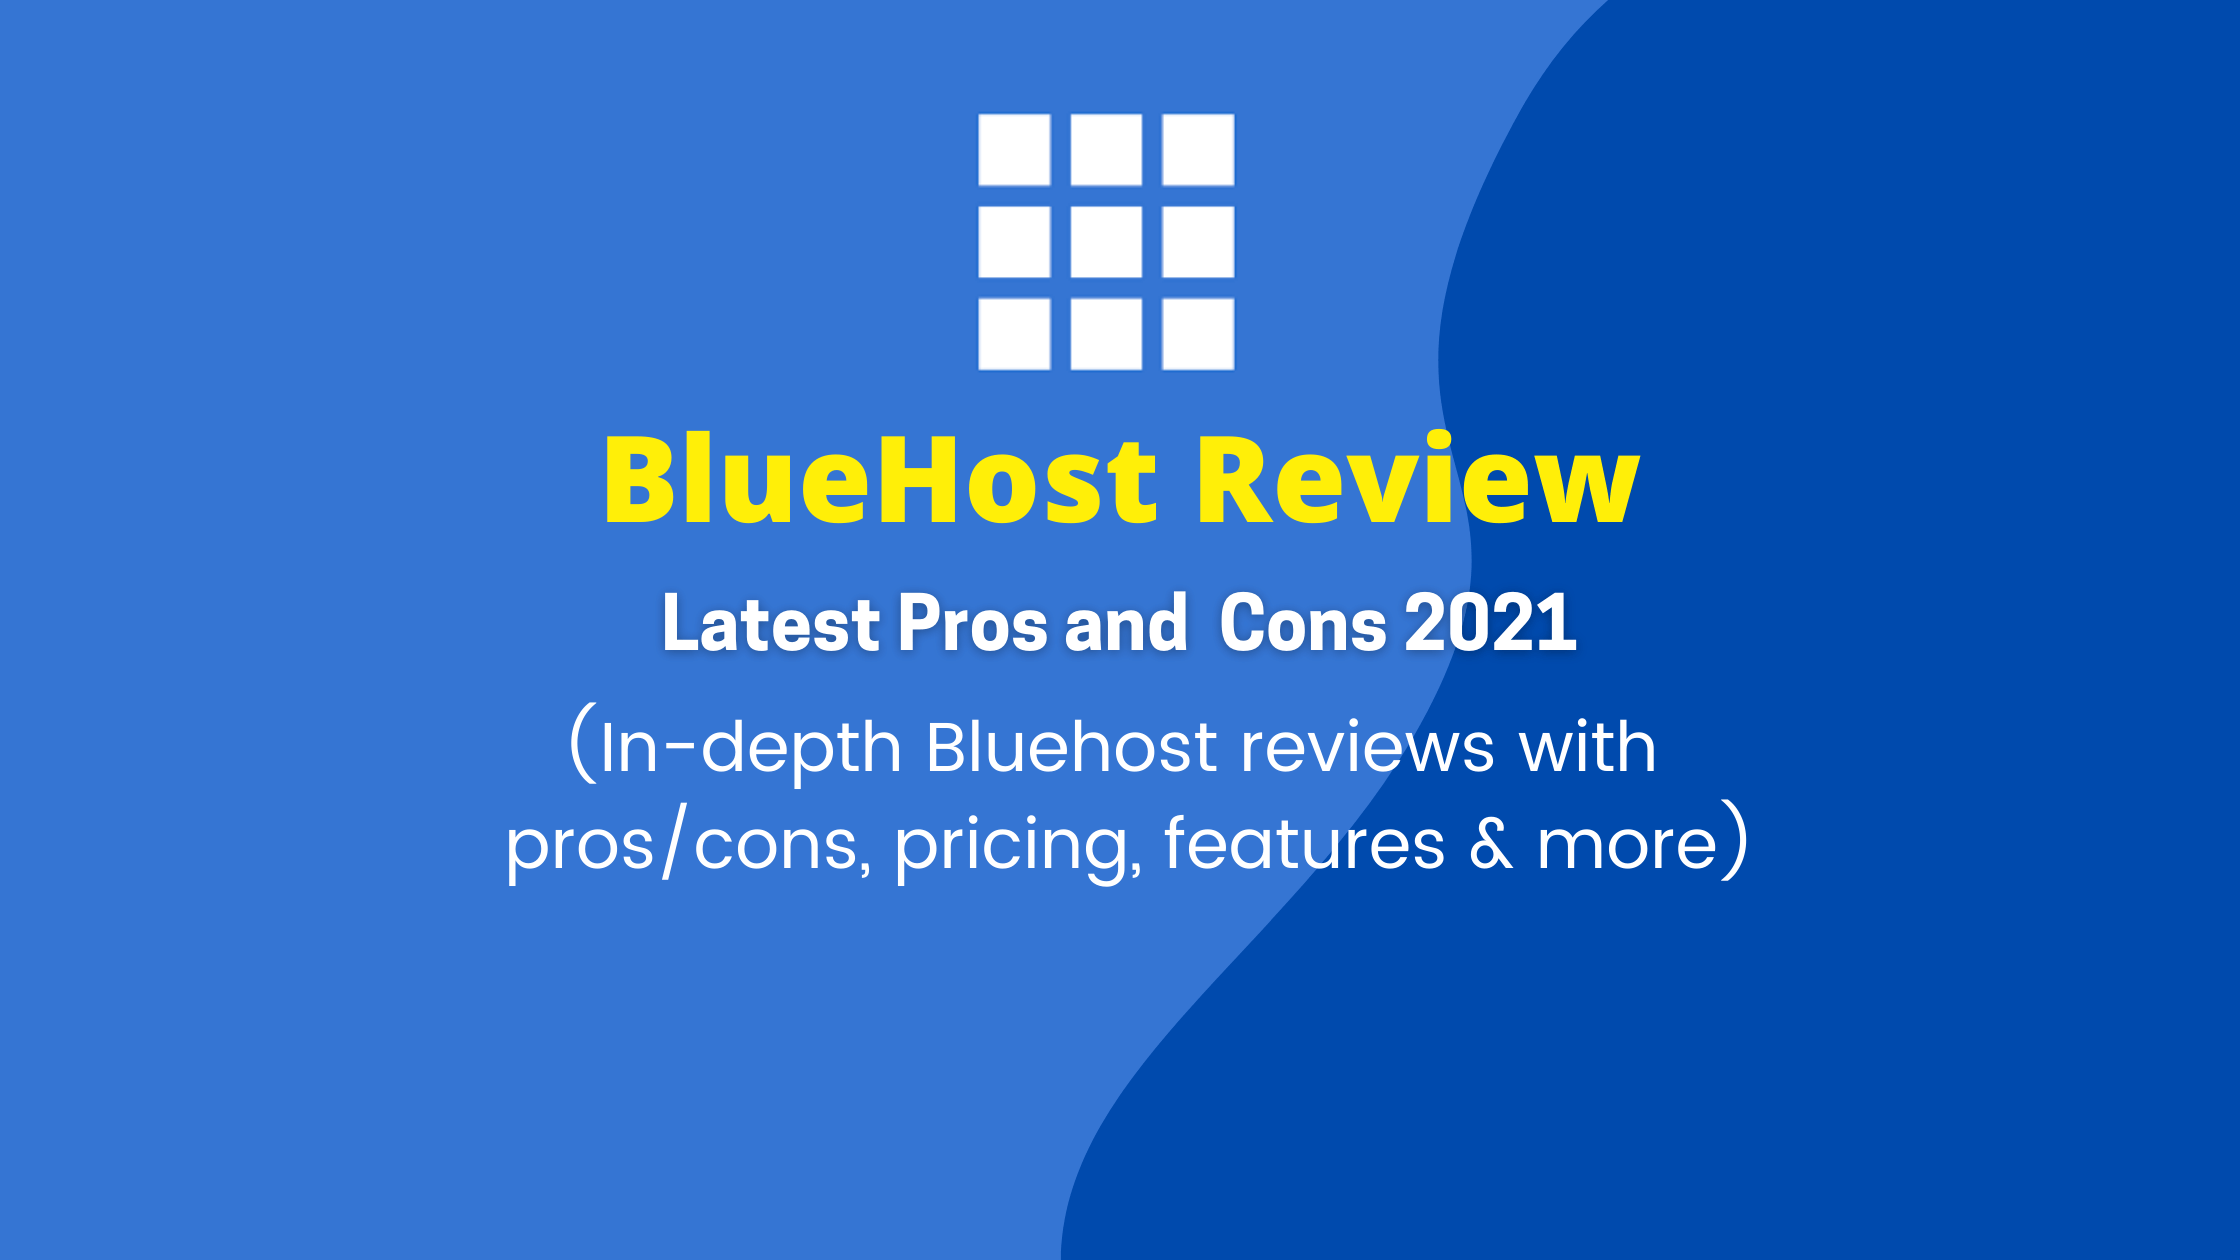 Bluehost Review with Latest Pros and Cons 2021